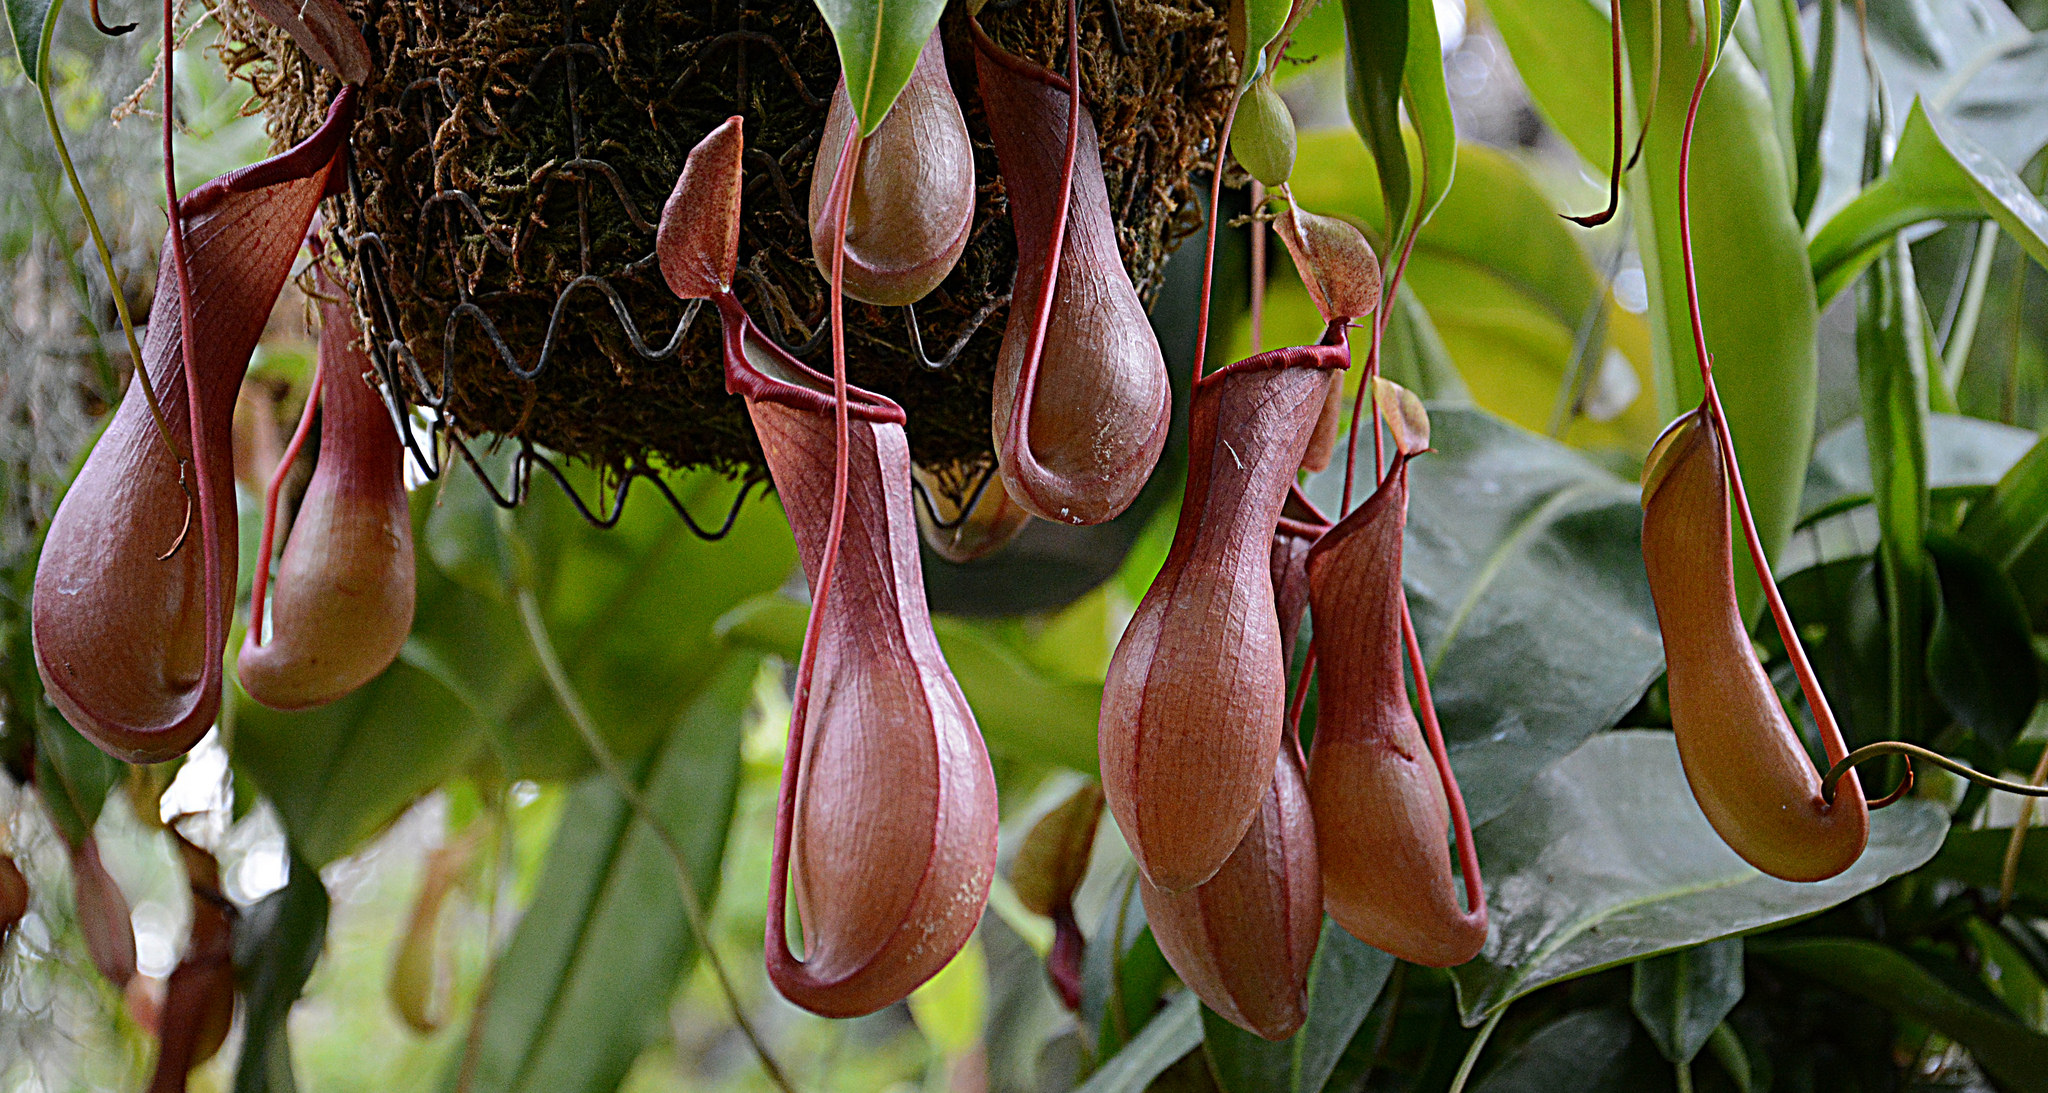 A few pitcher plants hang from some foliage.